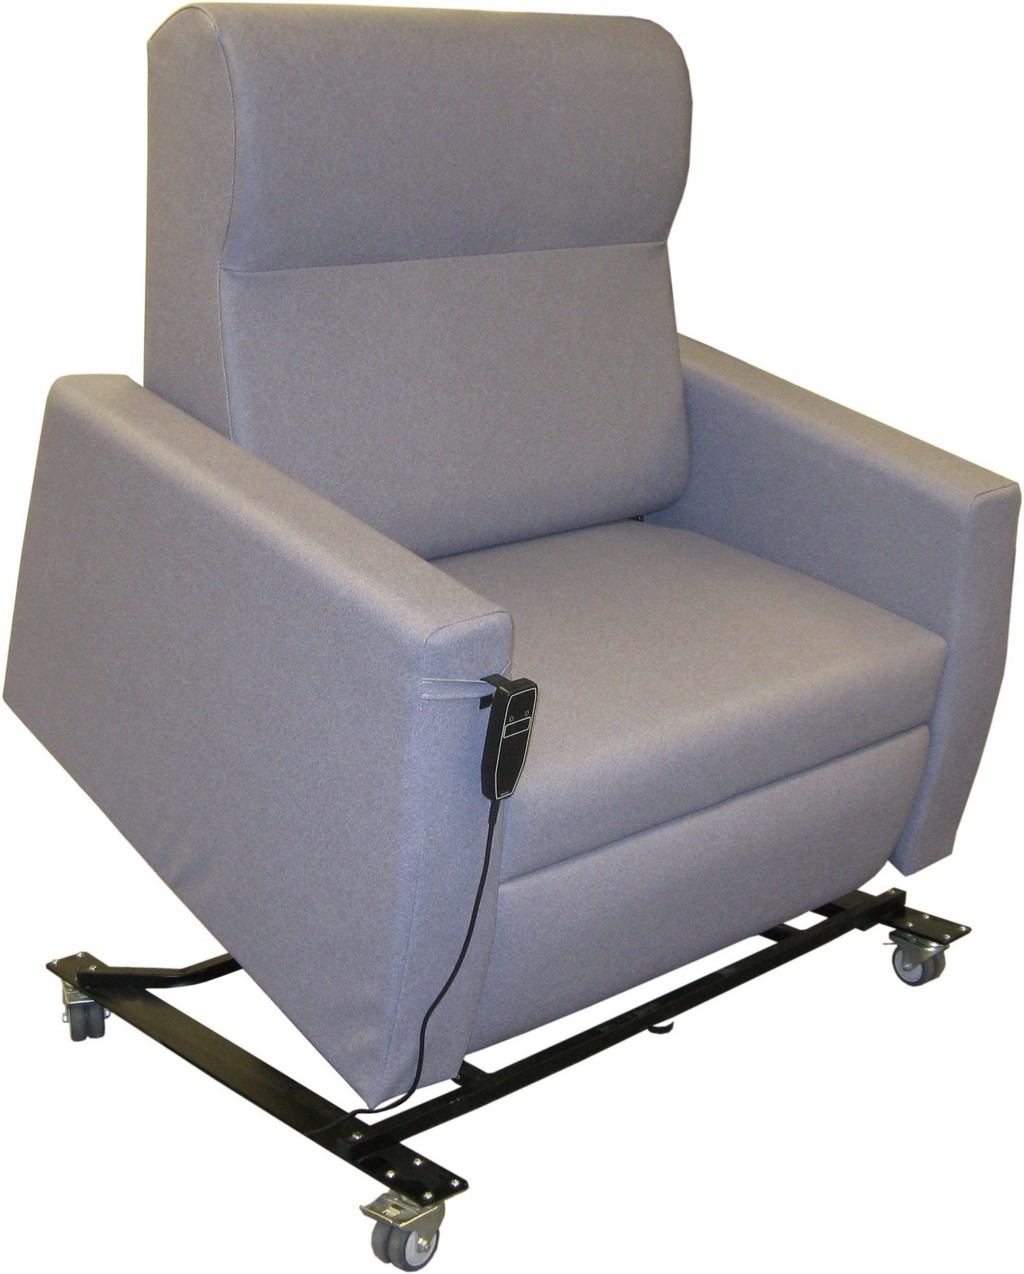 berkline lift chair, pride mobility lift chair time lift motors, lift chairs memphis, motorized lift chair